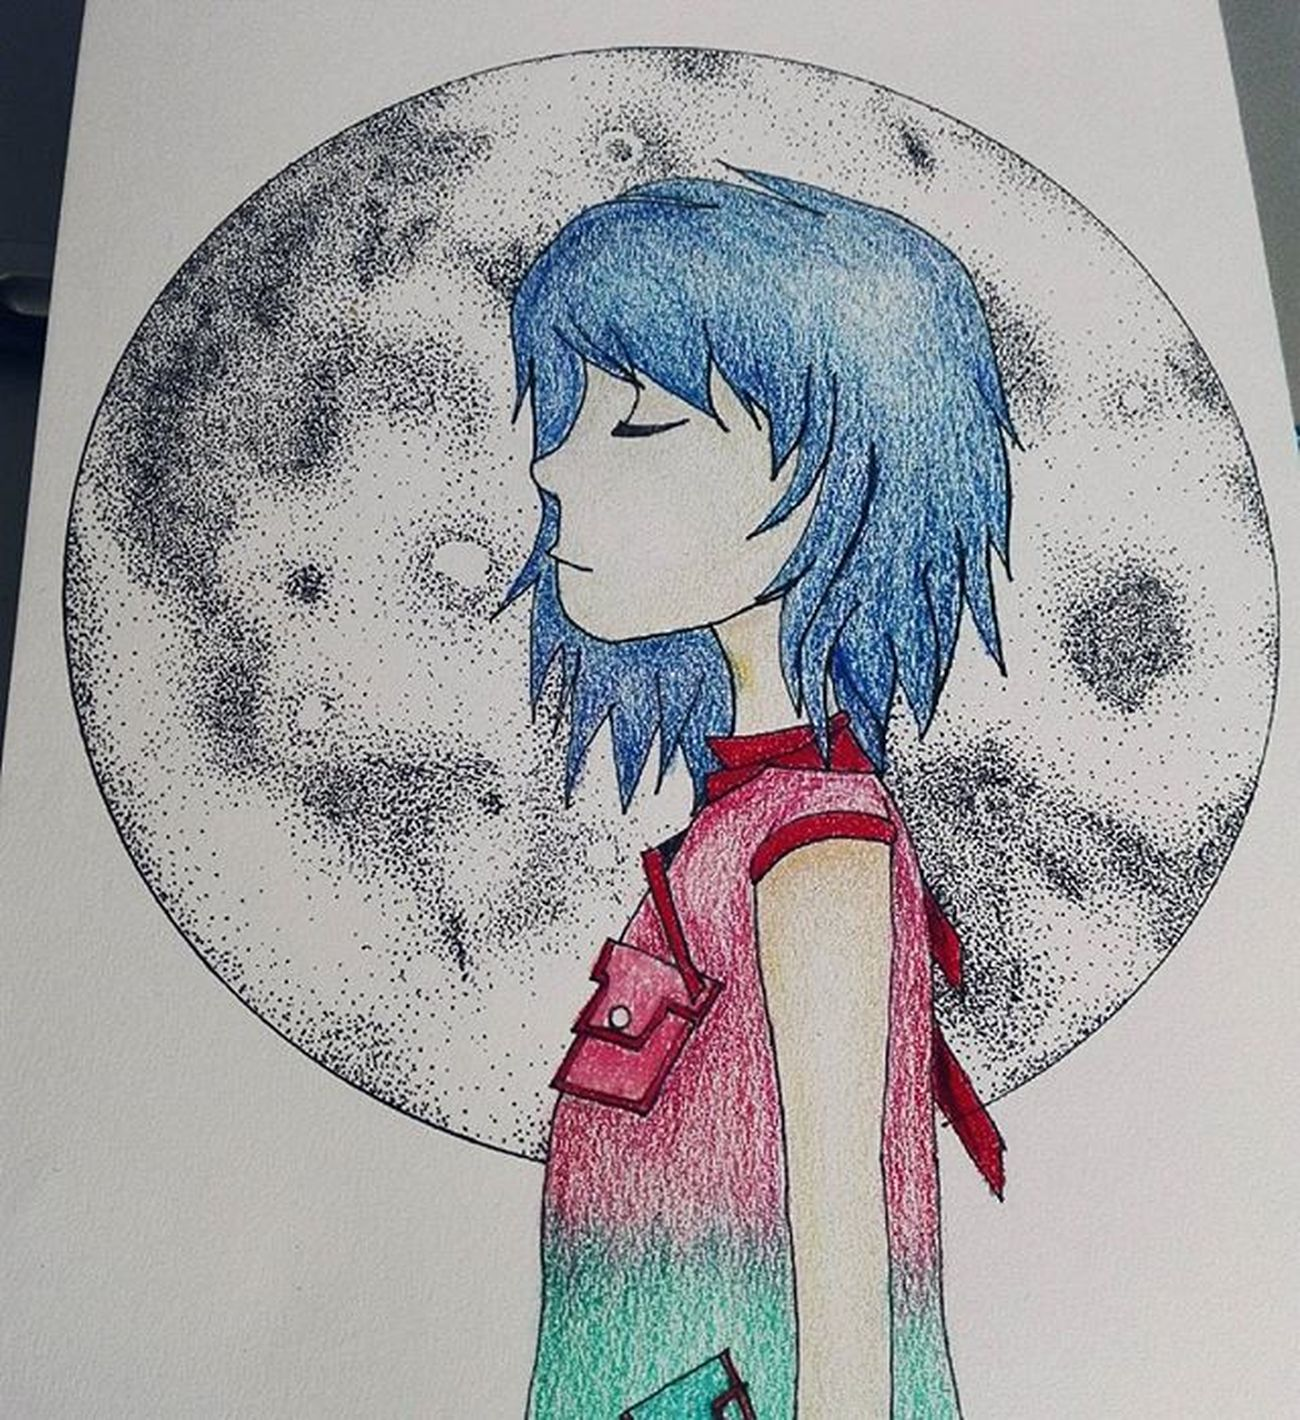 Brillo lunar Gorillaz Noodle PlasticBeach Art Doodle Sketchaday Scketch Moonlight